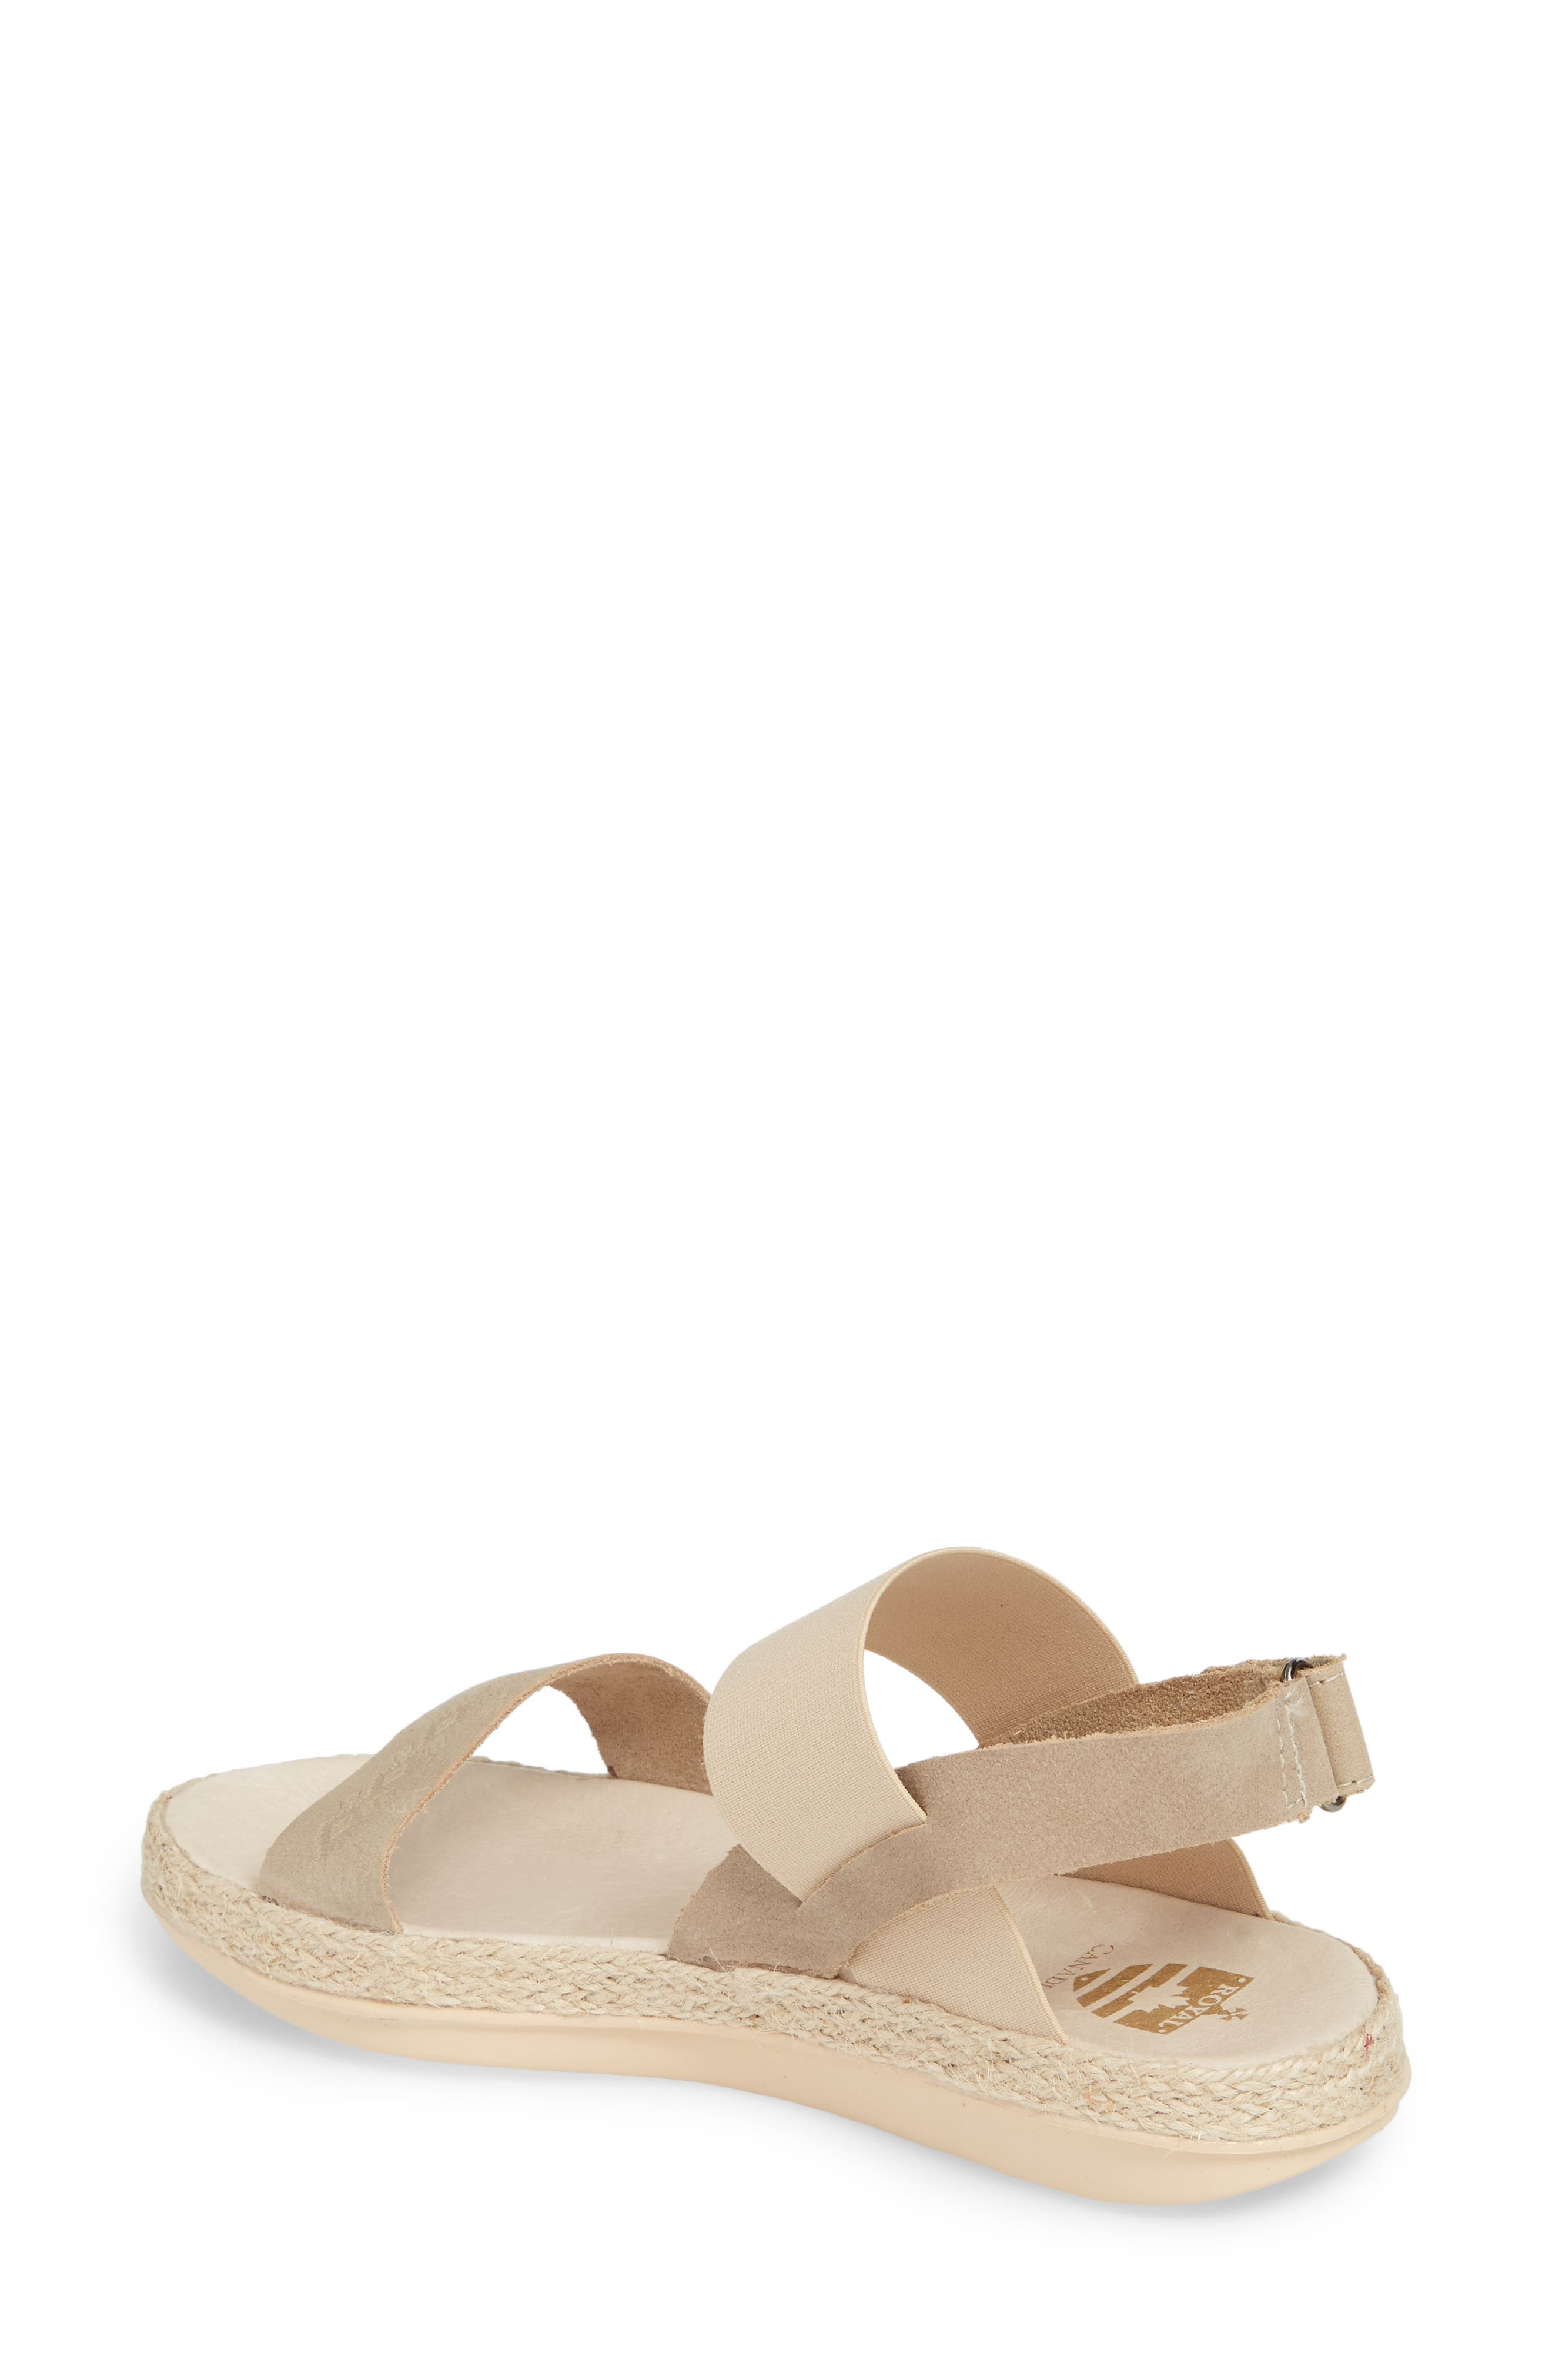 Tobermory Sandal,                             Alternate thumbnail 2, color,                             TAUPE LEATHER